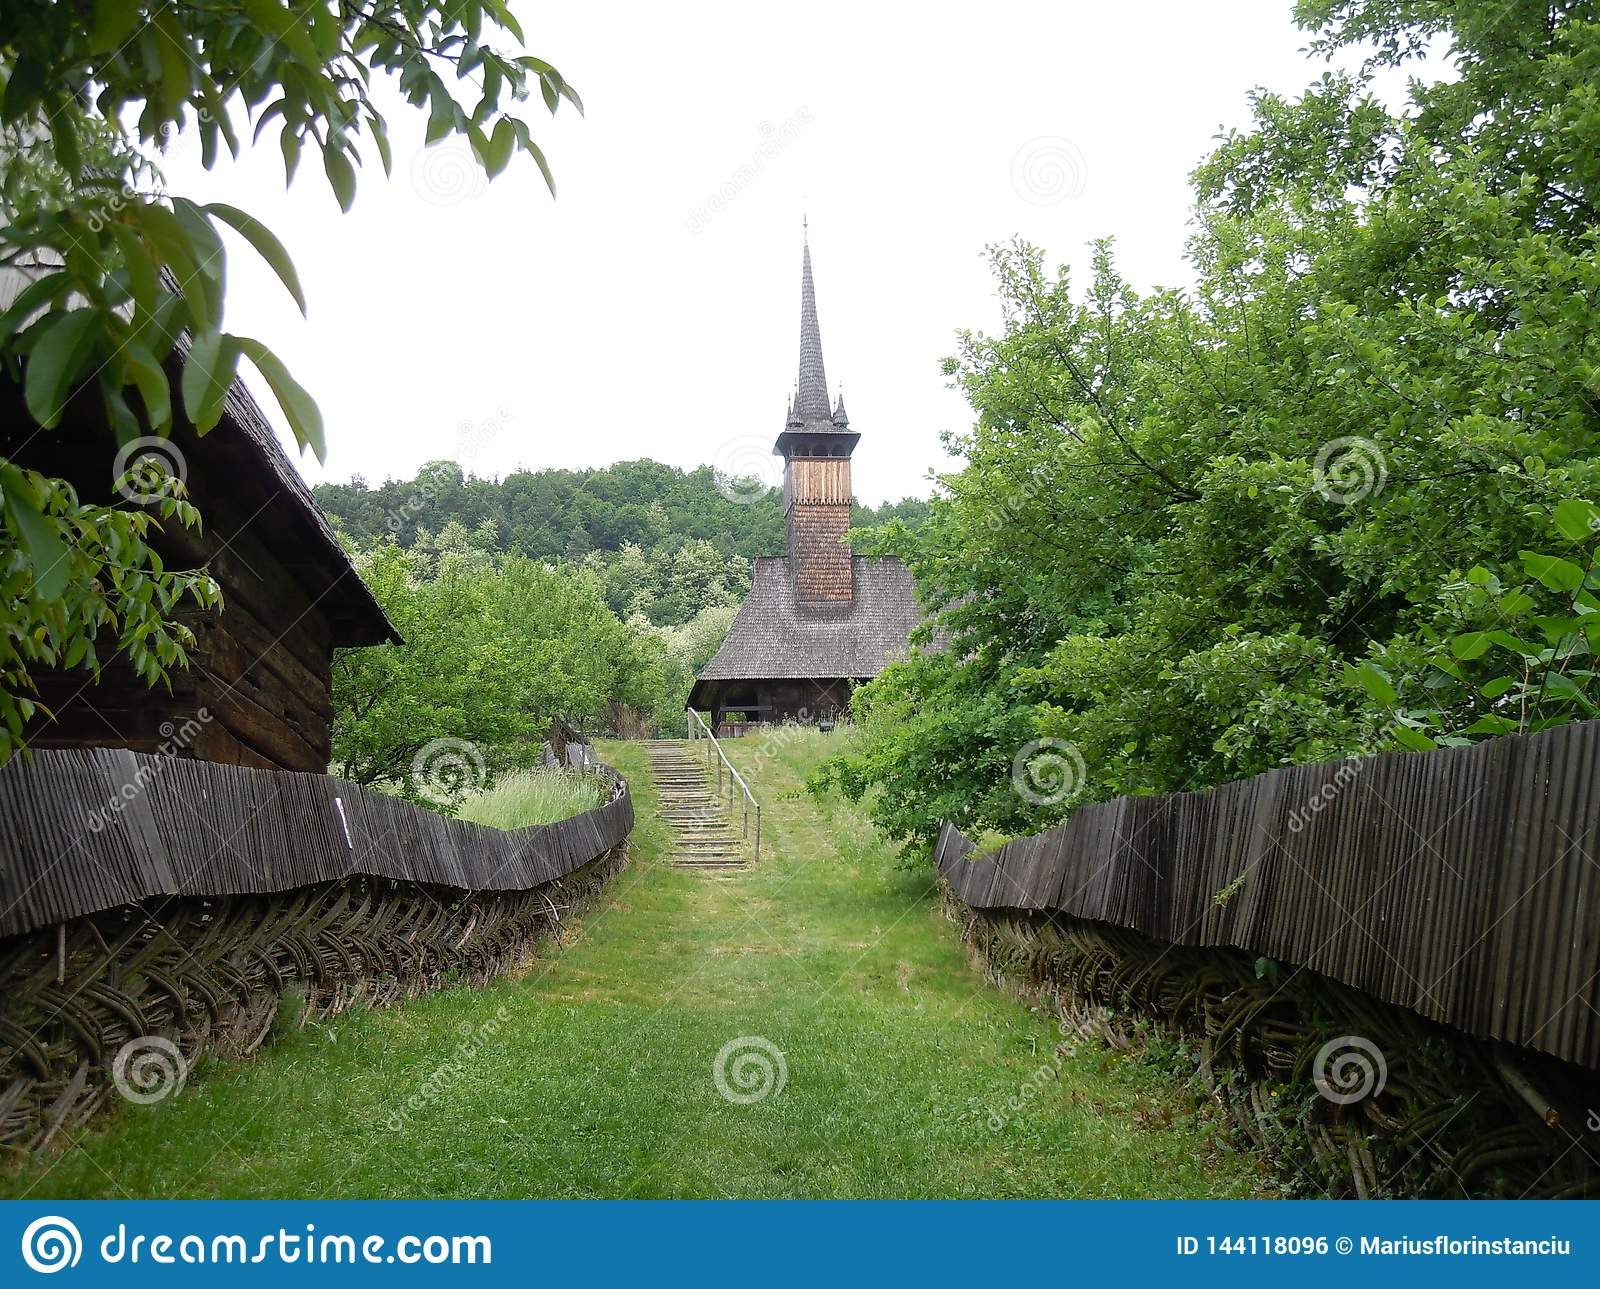 The road to the wooden church